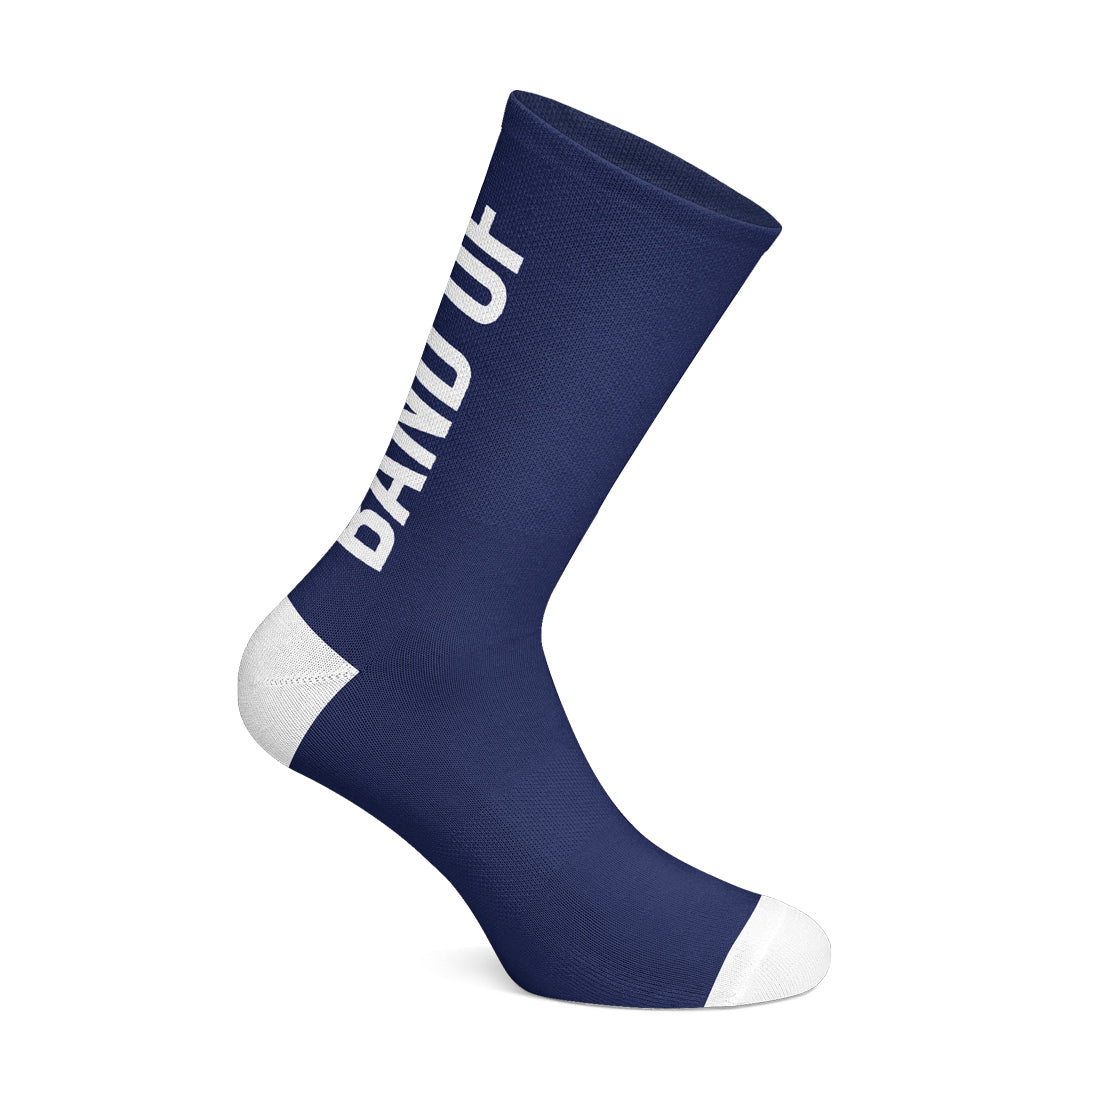 Pro Elevation Socks - Navy